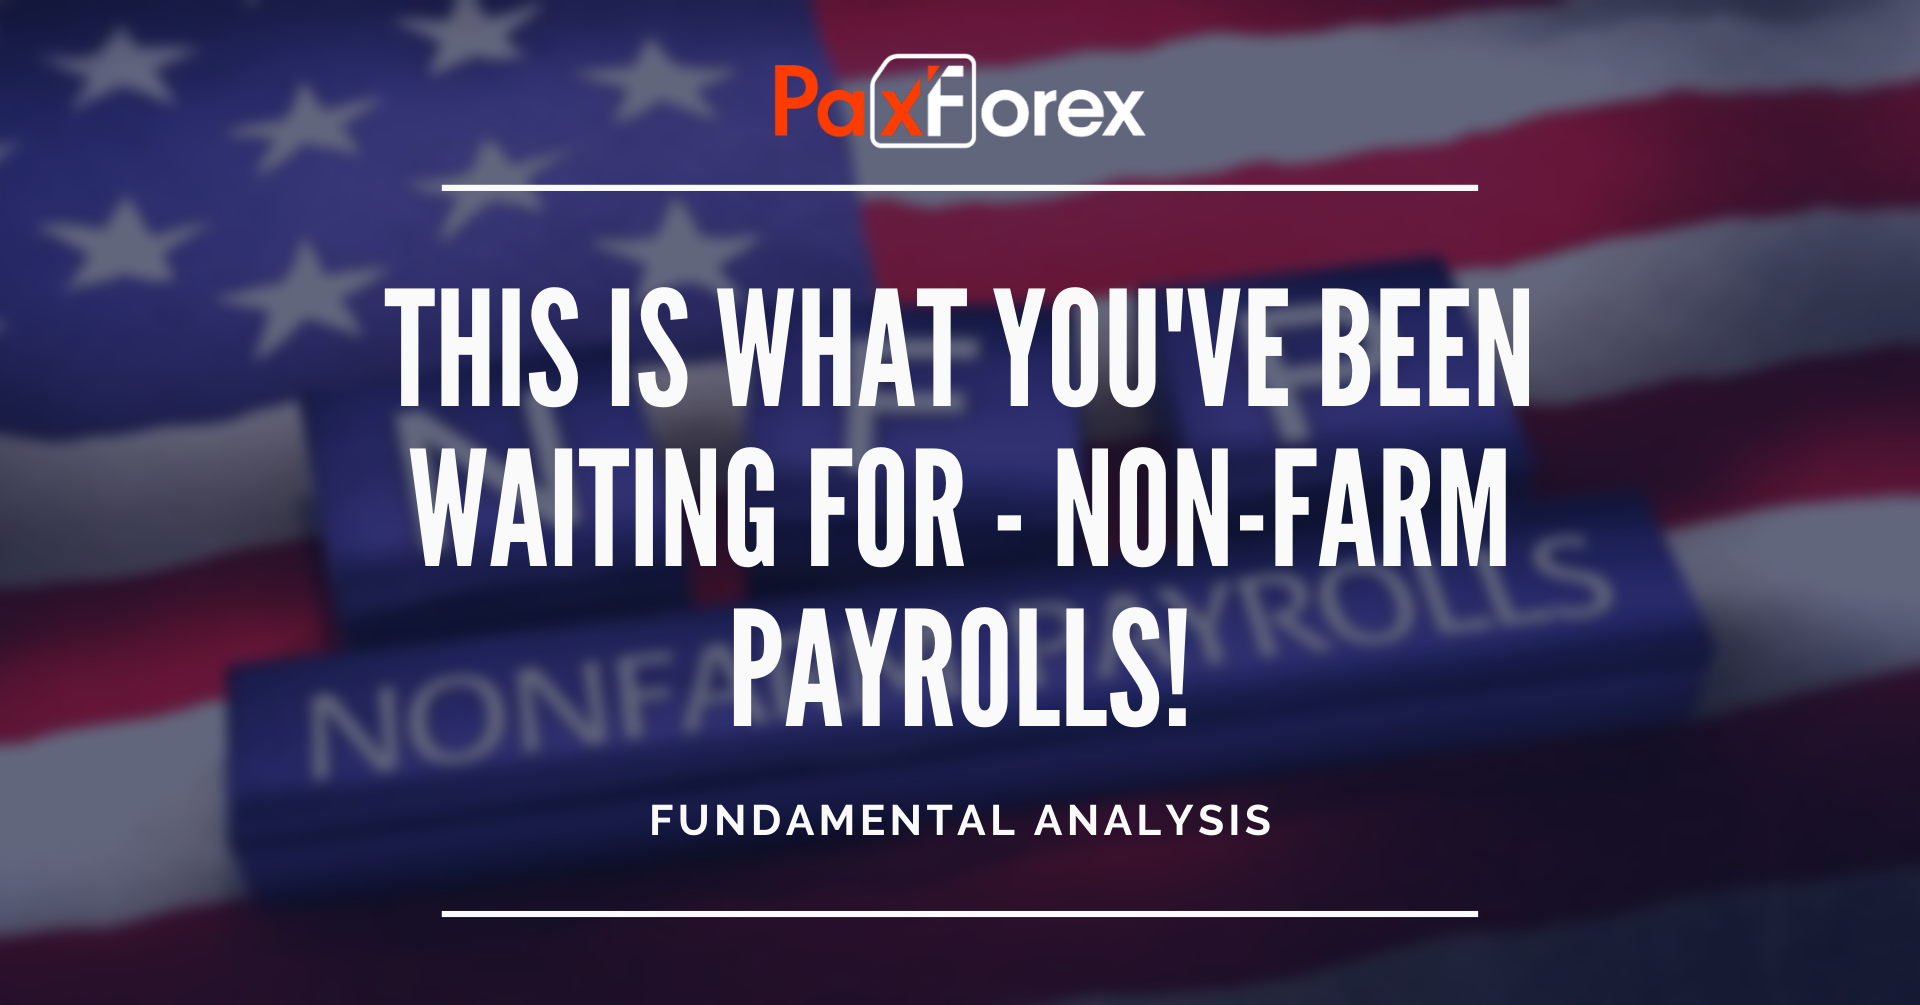 This is what you've been waiting for - Non-Farm Payrolls!